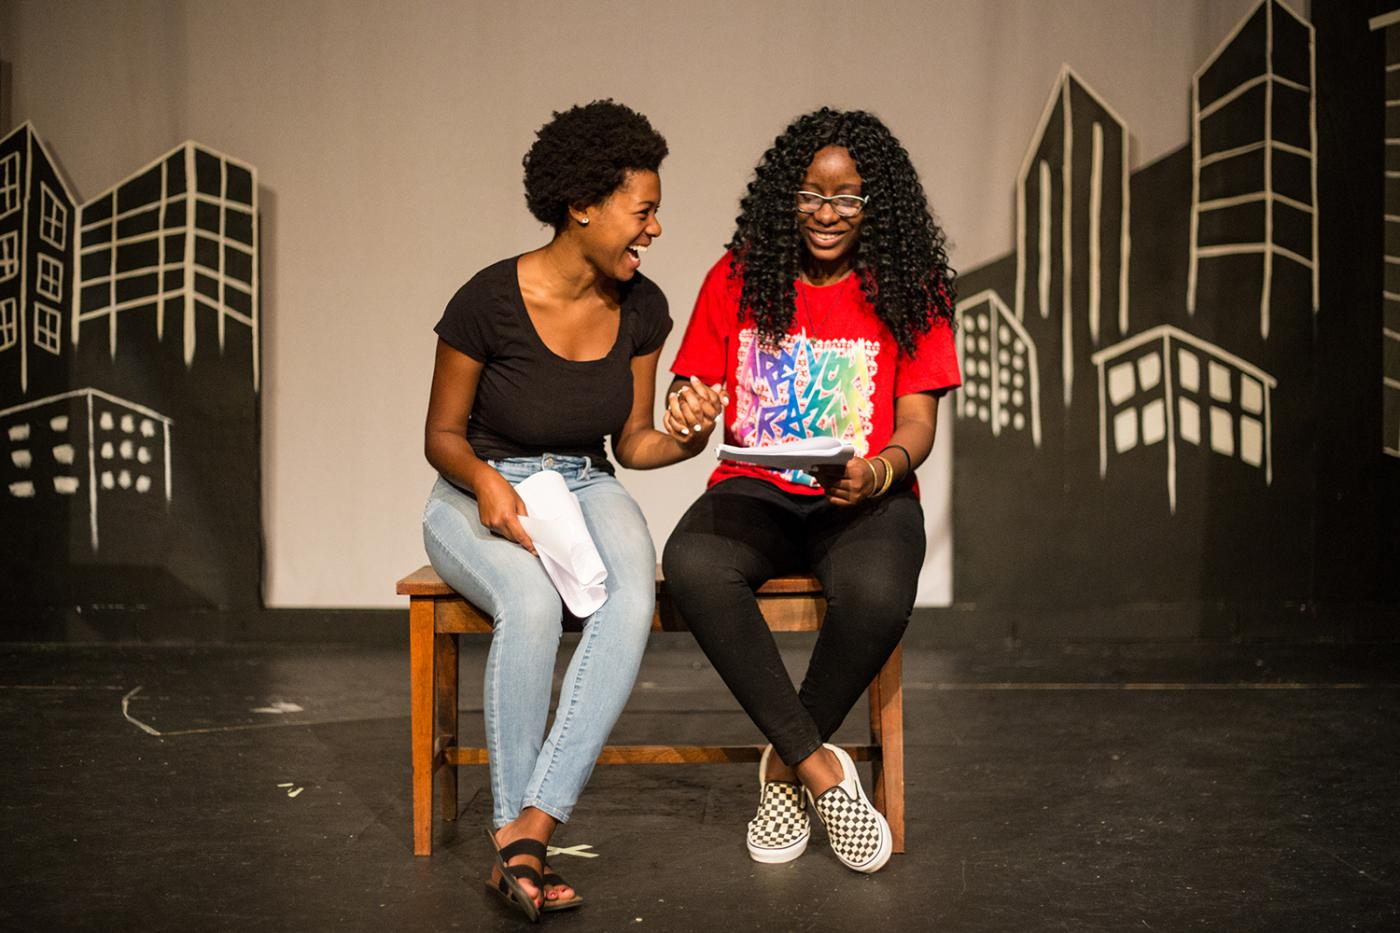 Two young women sit on a stage reading lines in front of an illustrated cityscape.